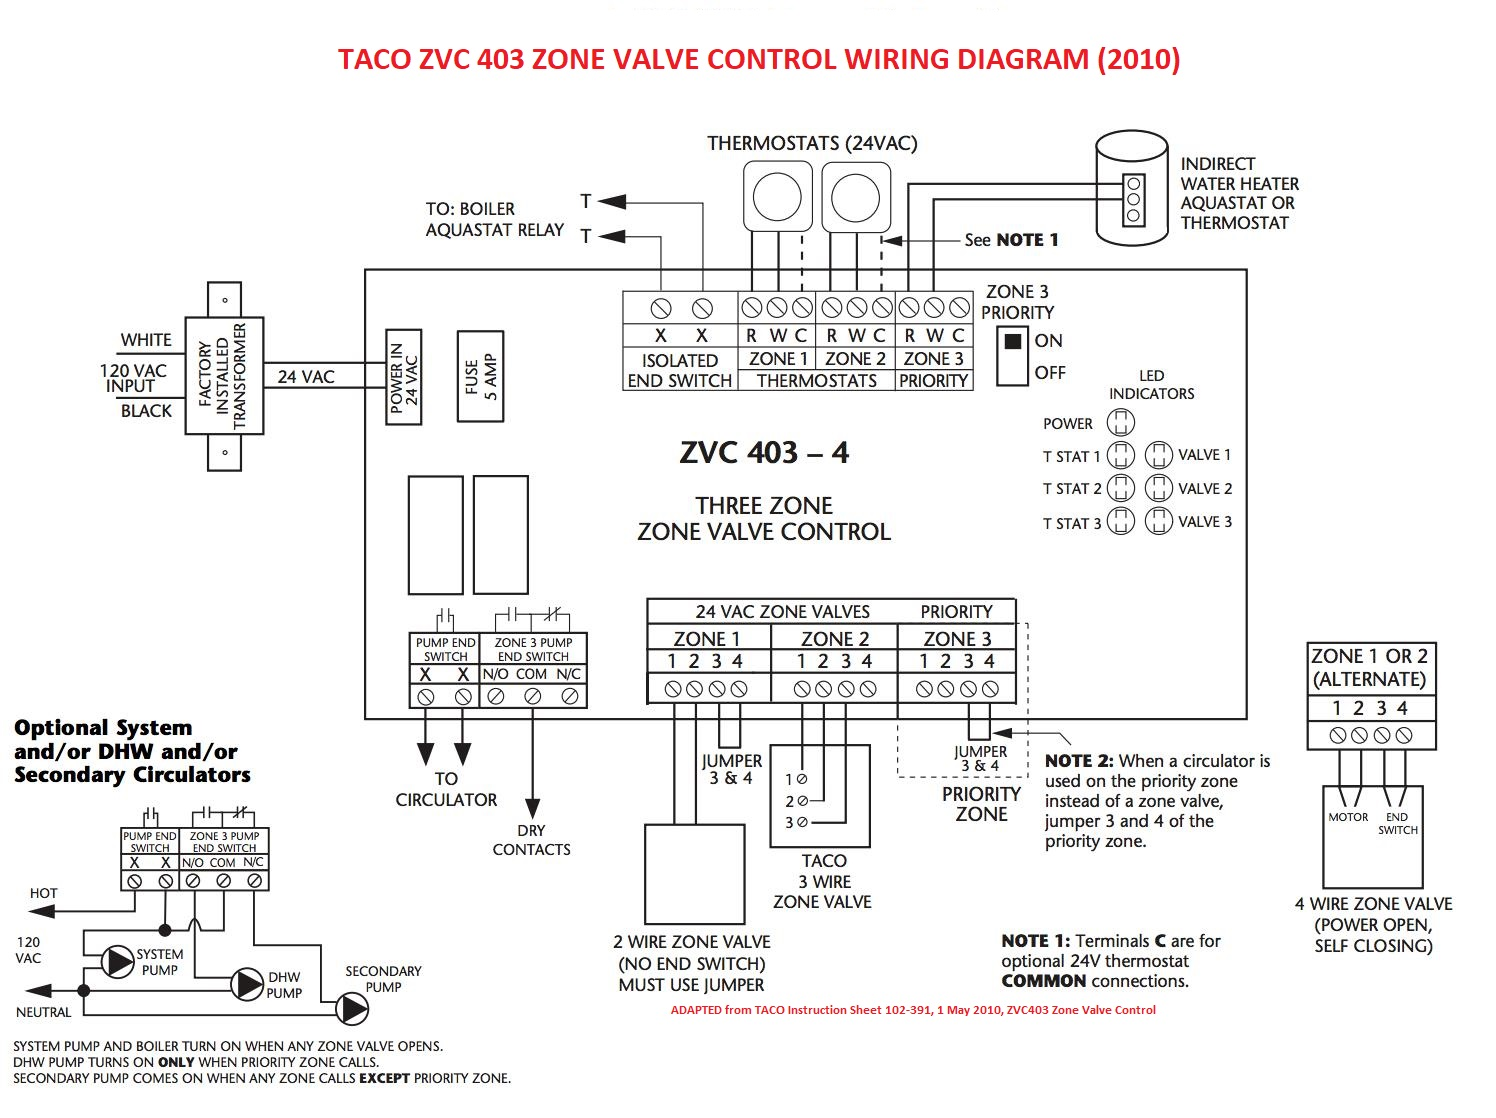 Zone valve wiring installation instructions guide to heating taci zvc493 wiring diagram click to enlarge at inspectapedia individual hydronic heating zone asfbconference2016